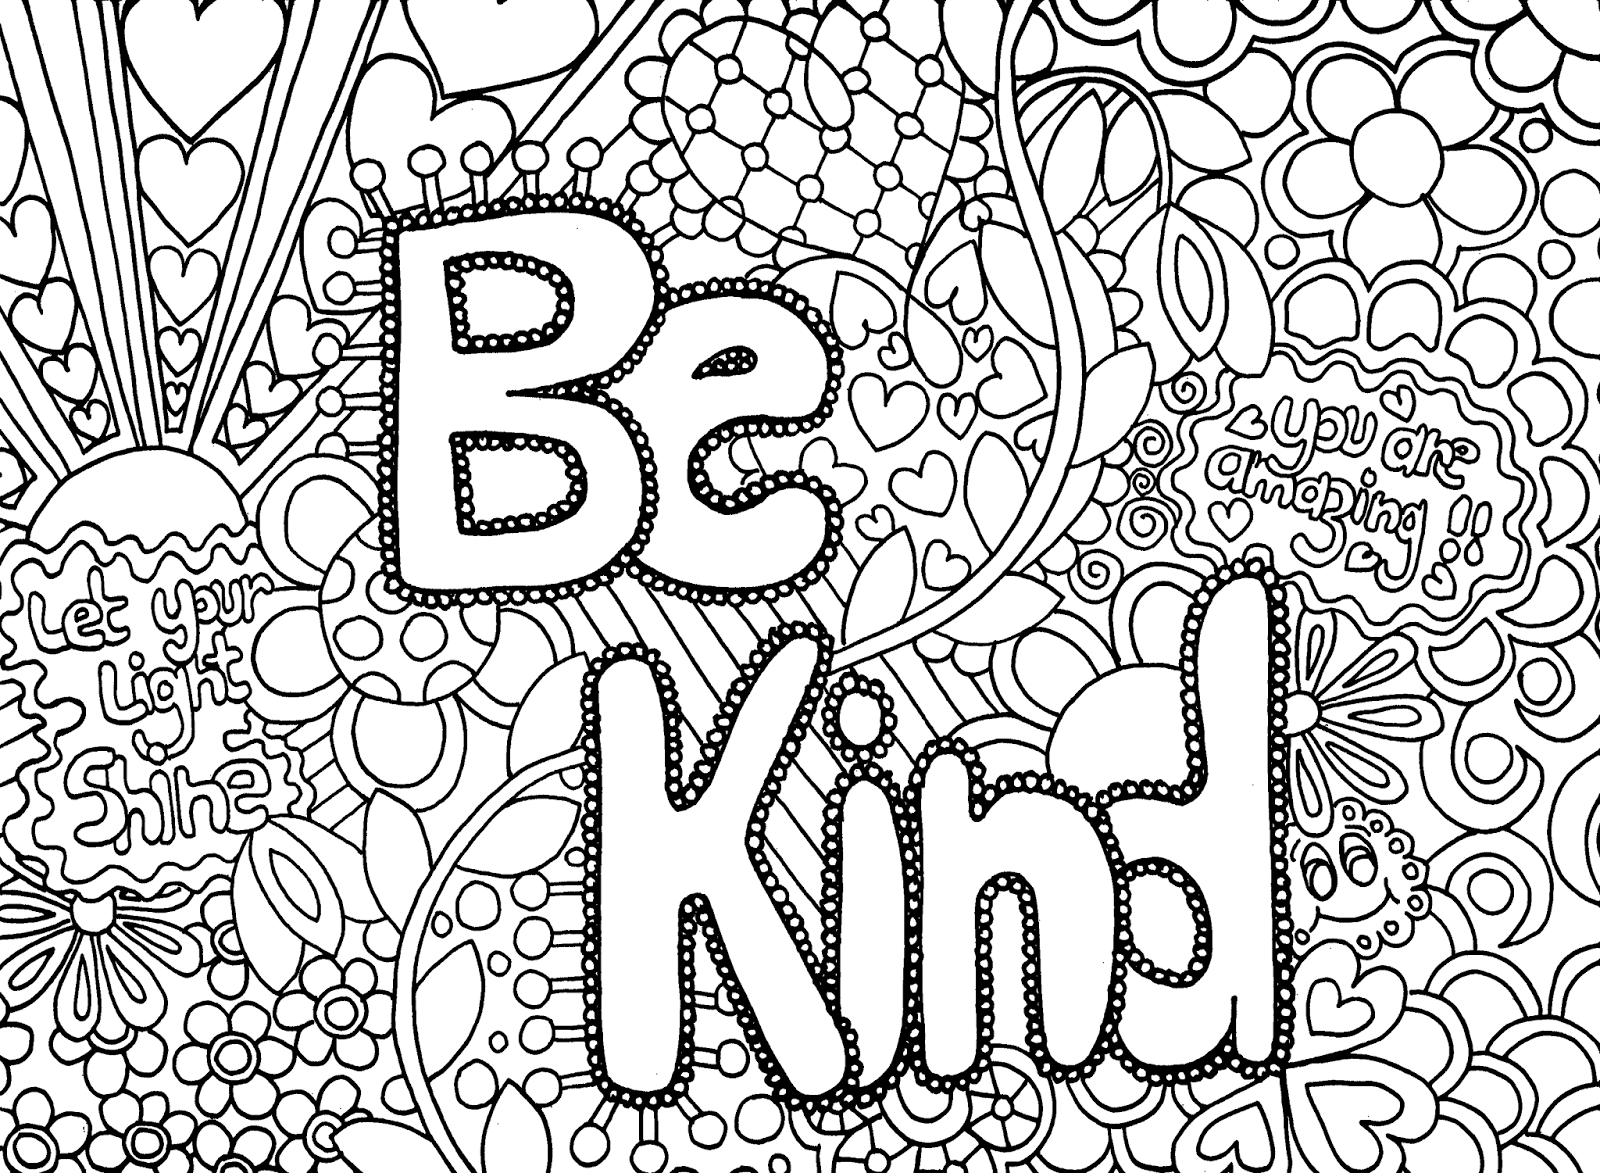 coloring pages detailed detailed coloring pages to download and print for free coloring detailed pages